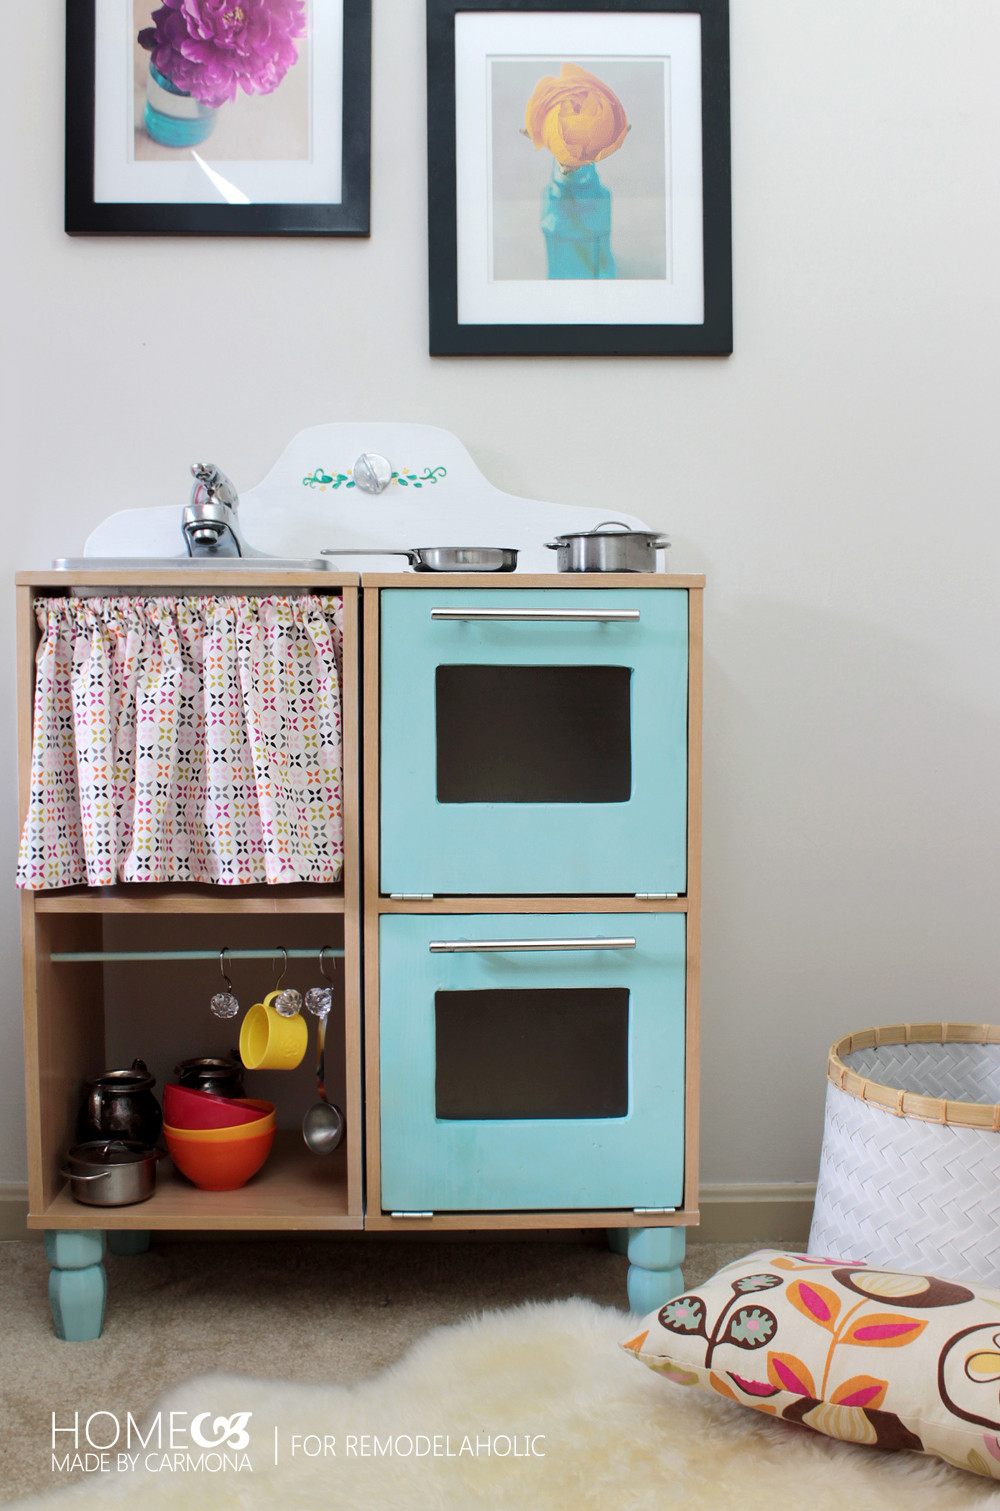 Best ideas about DIY Kids Play Kitchen . Save or Pin Remodelaholic Now.